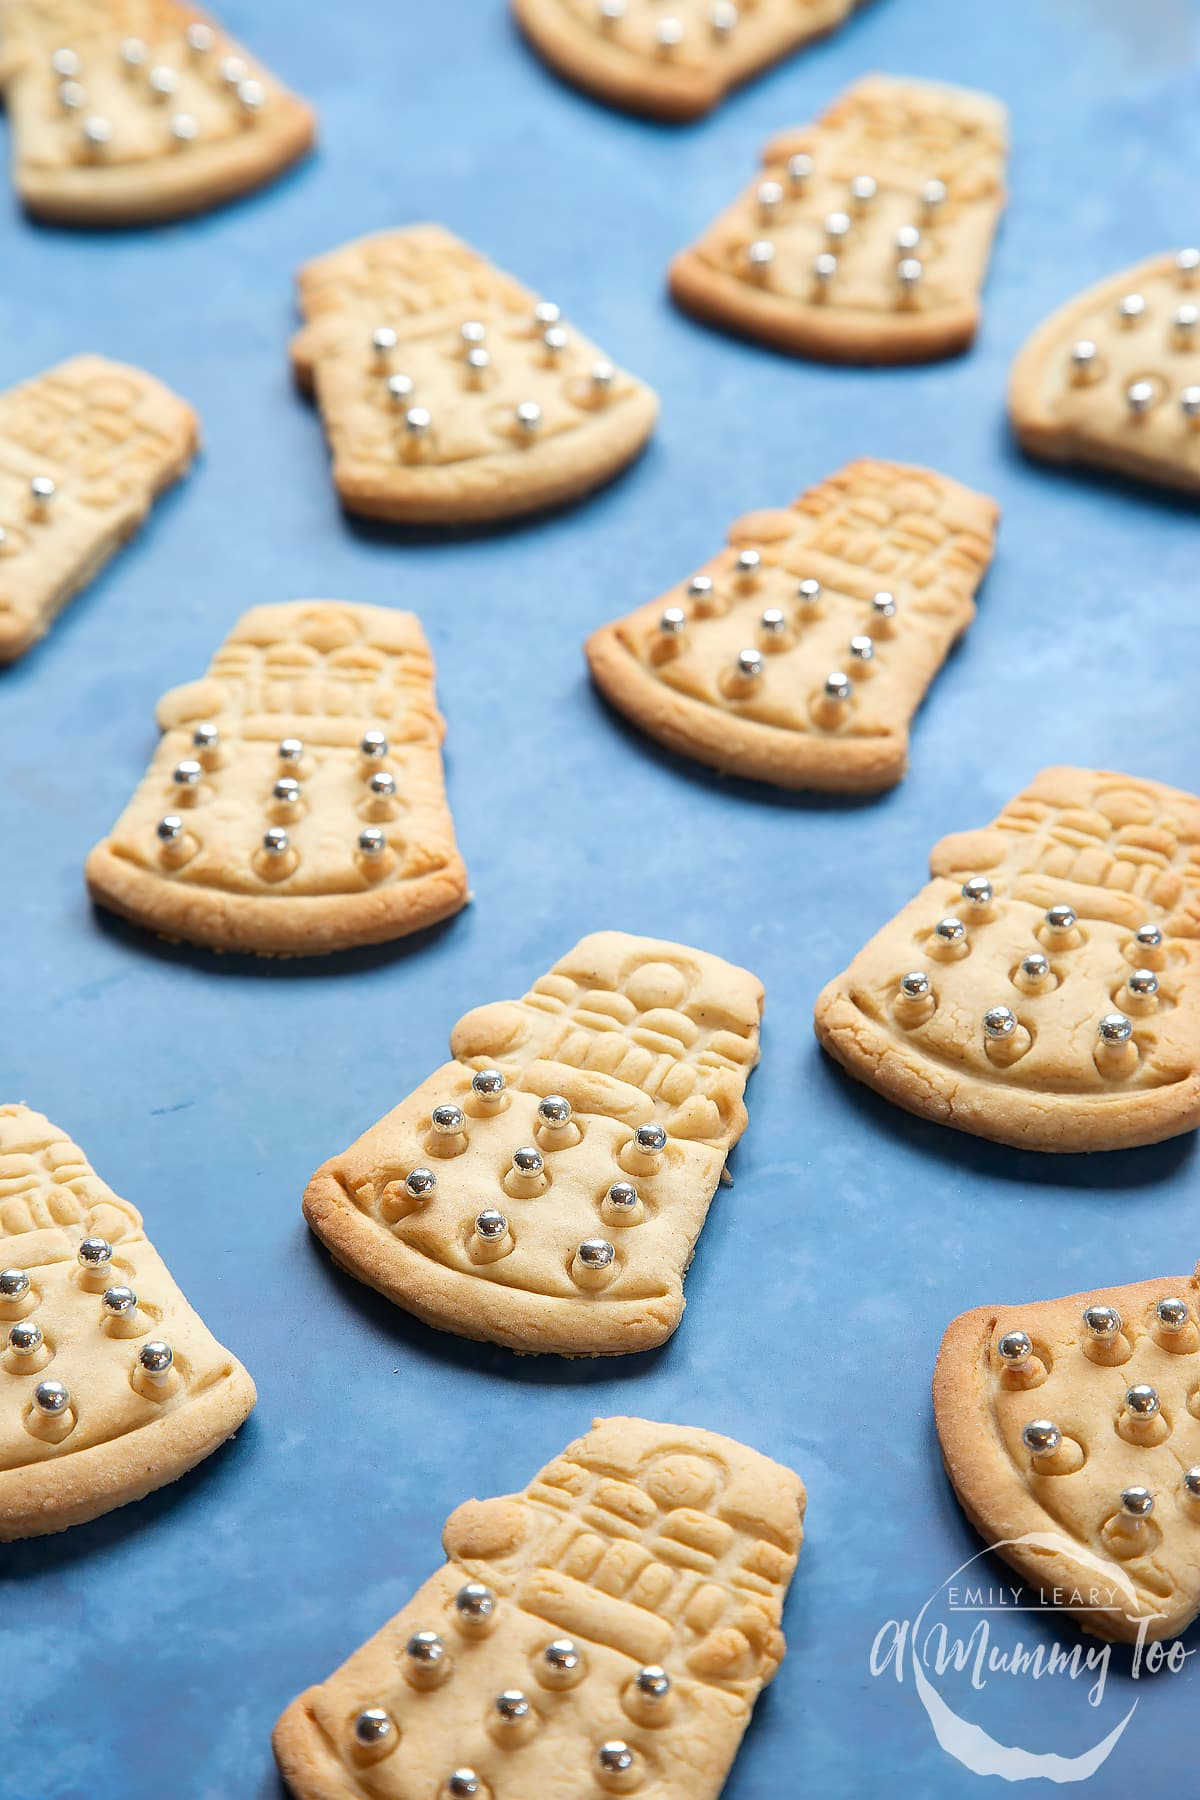 Dalek cookies on a blue background. The cookies are decorated with edible silver candy balls adhered with white icing.